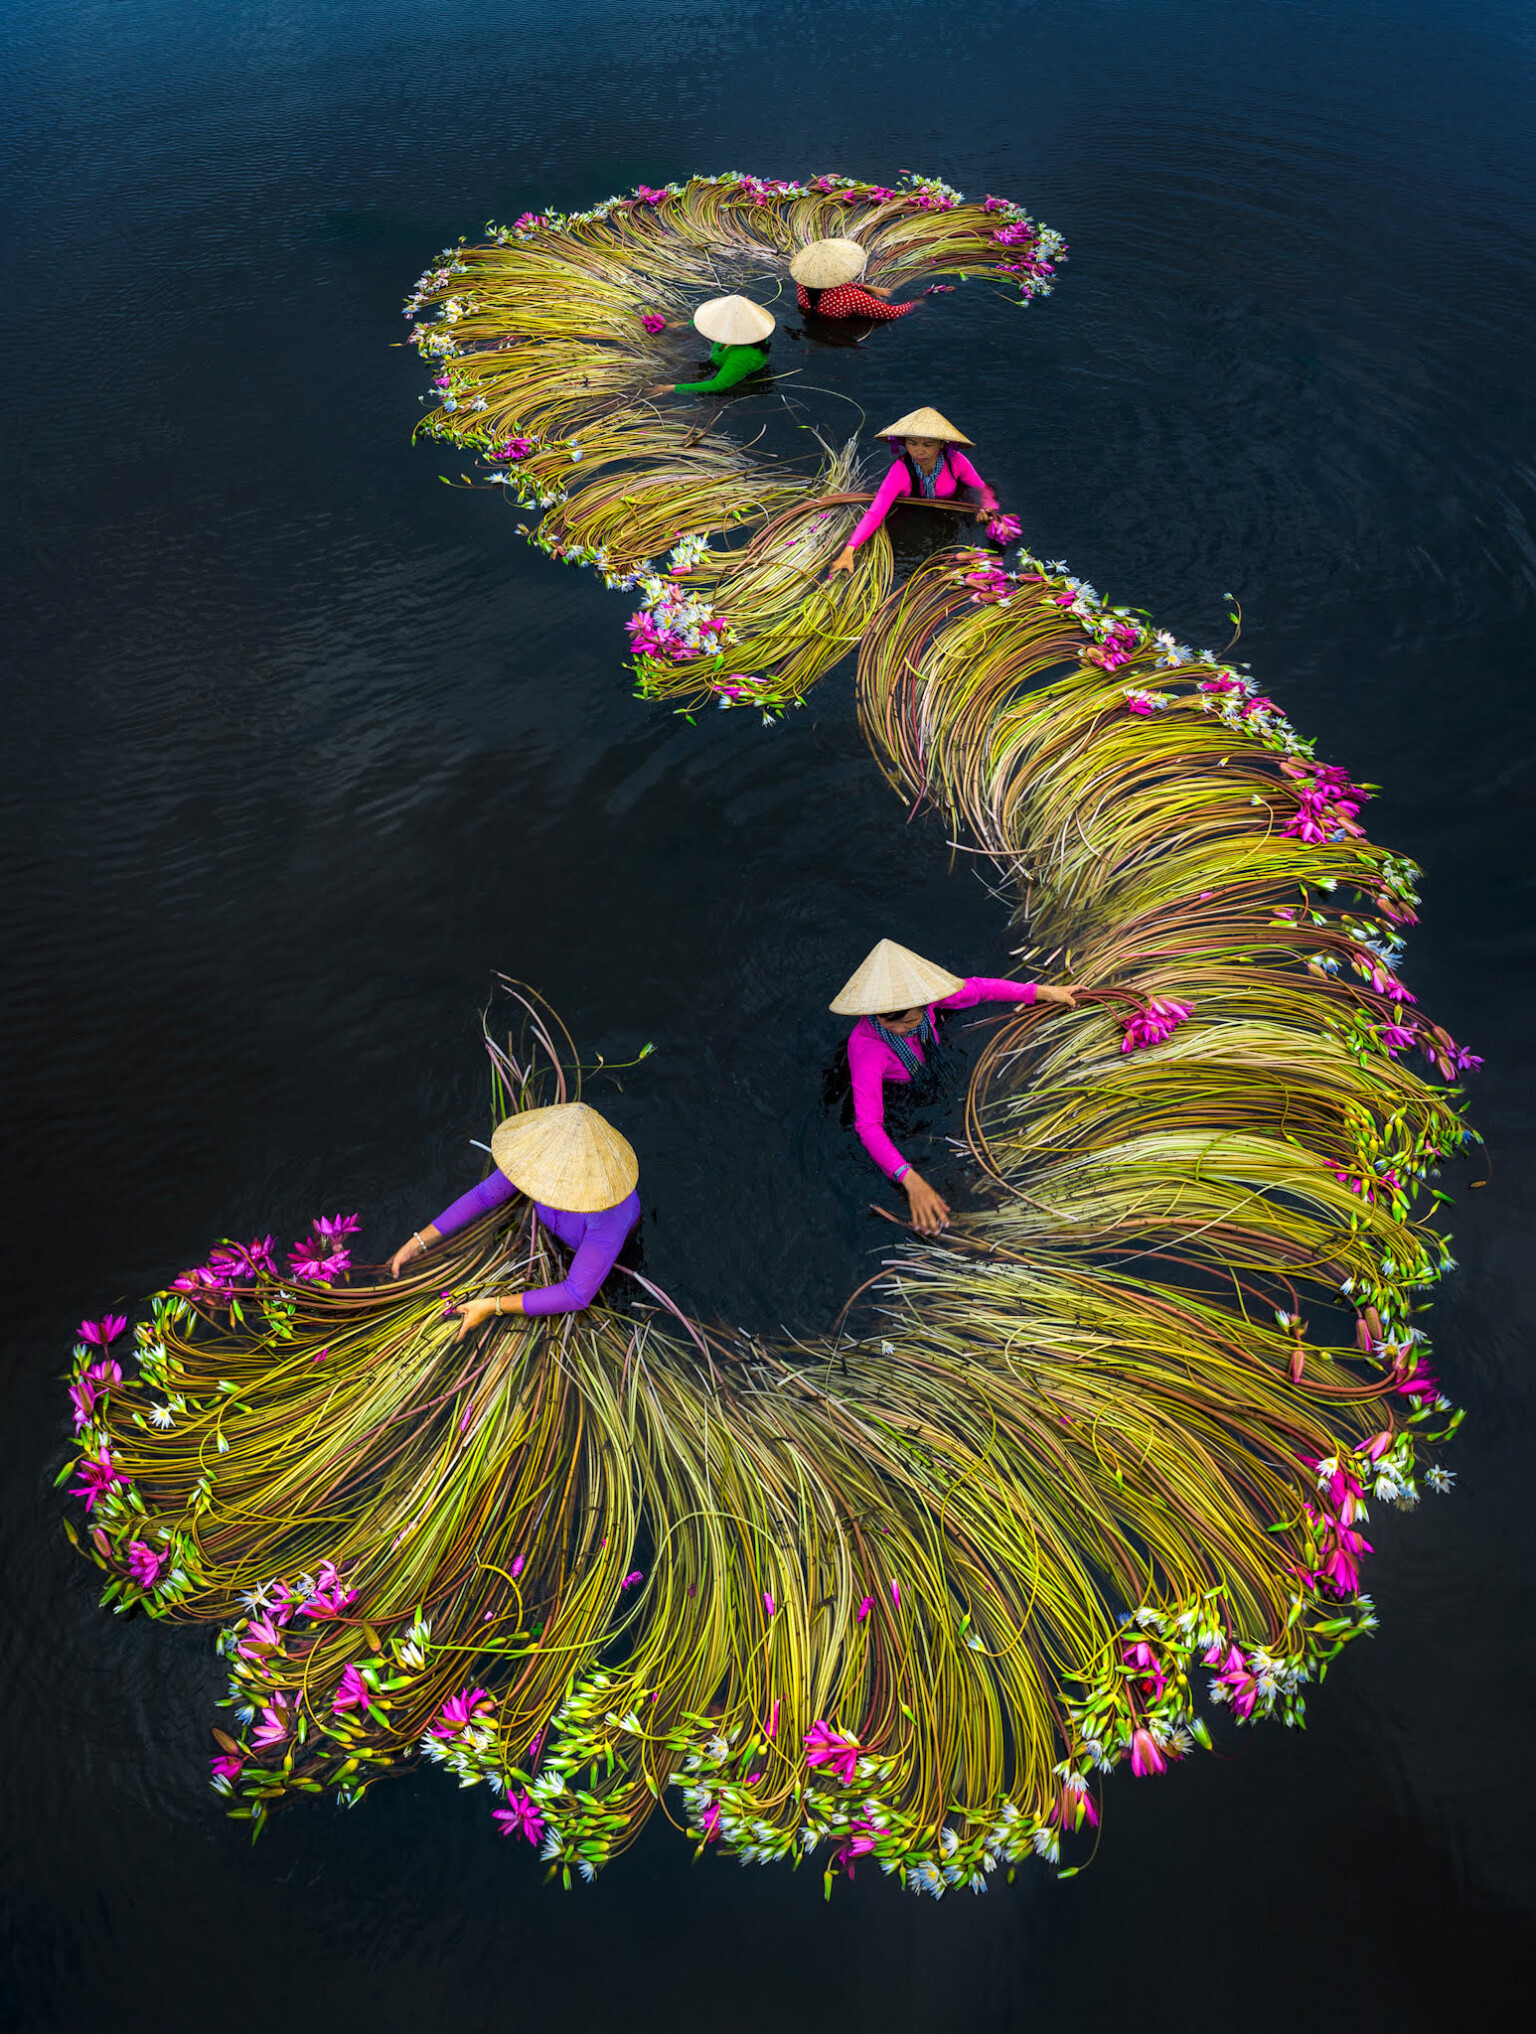 Pictures of the Water Lily Harvest by Trung Huy Pham – Fubiz Media Design